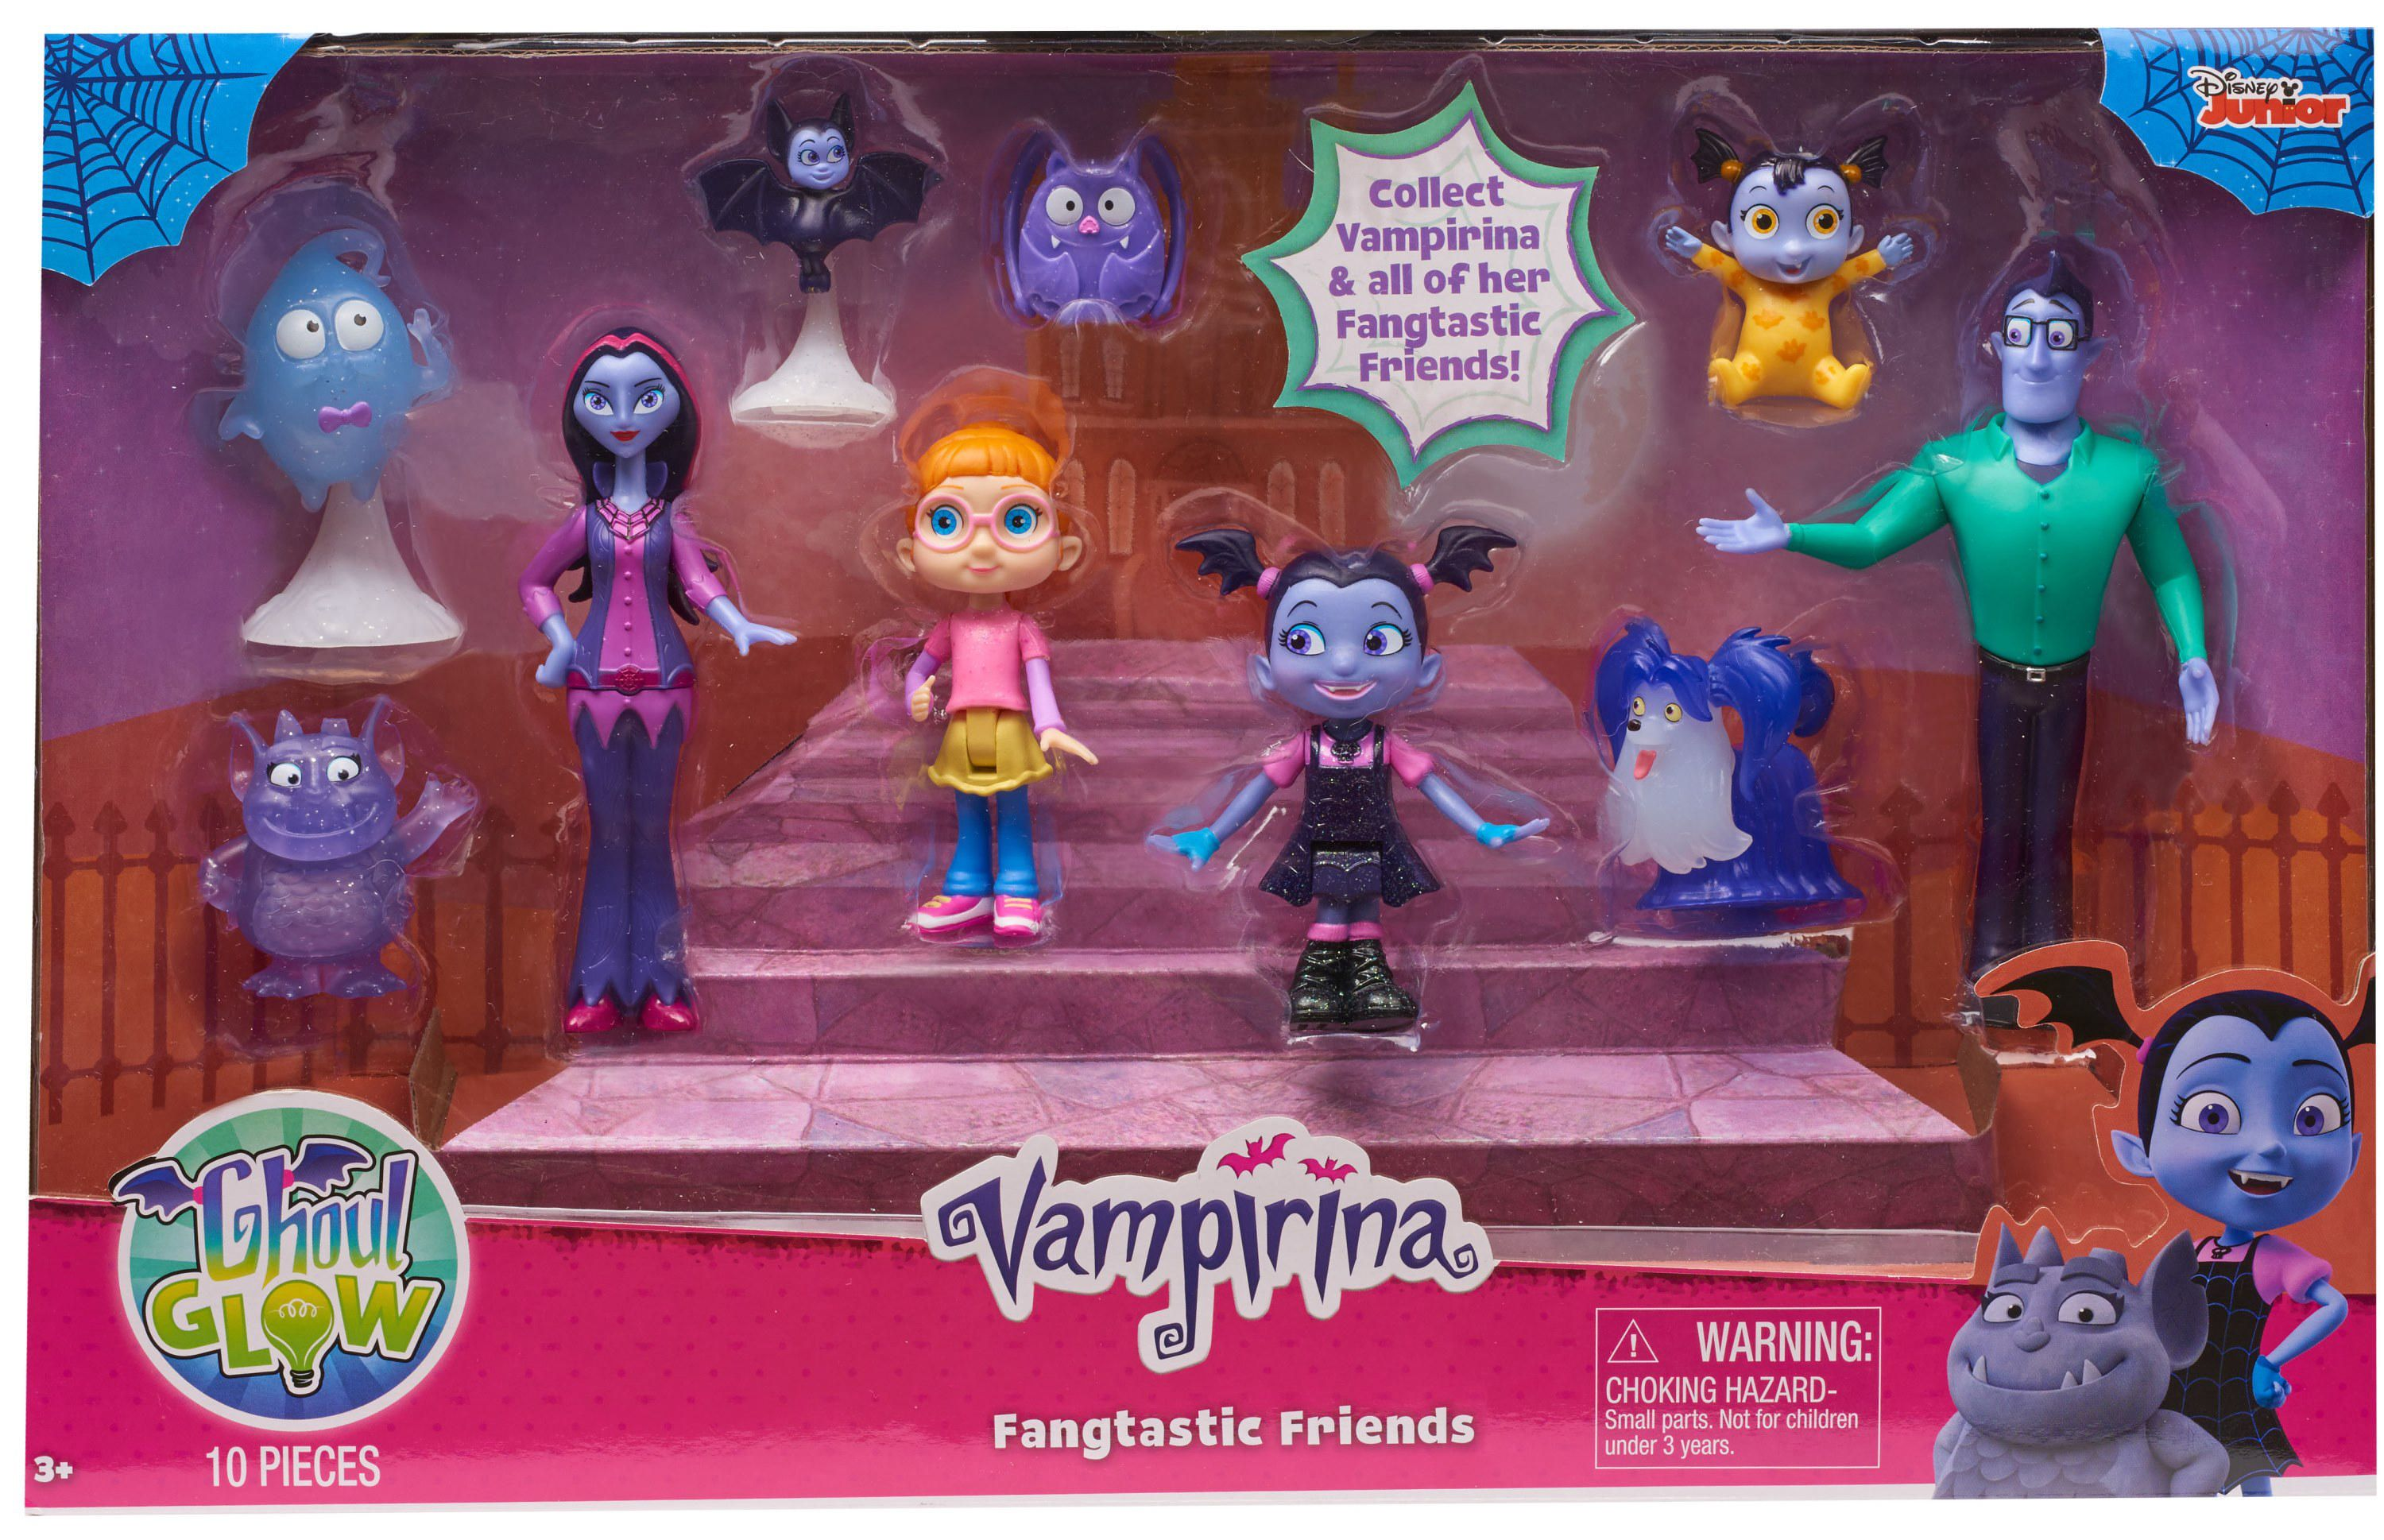 Disney Junior Vampirina Ghoul Glow Fangtastic Friends Set